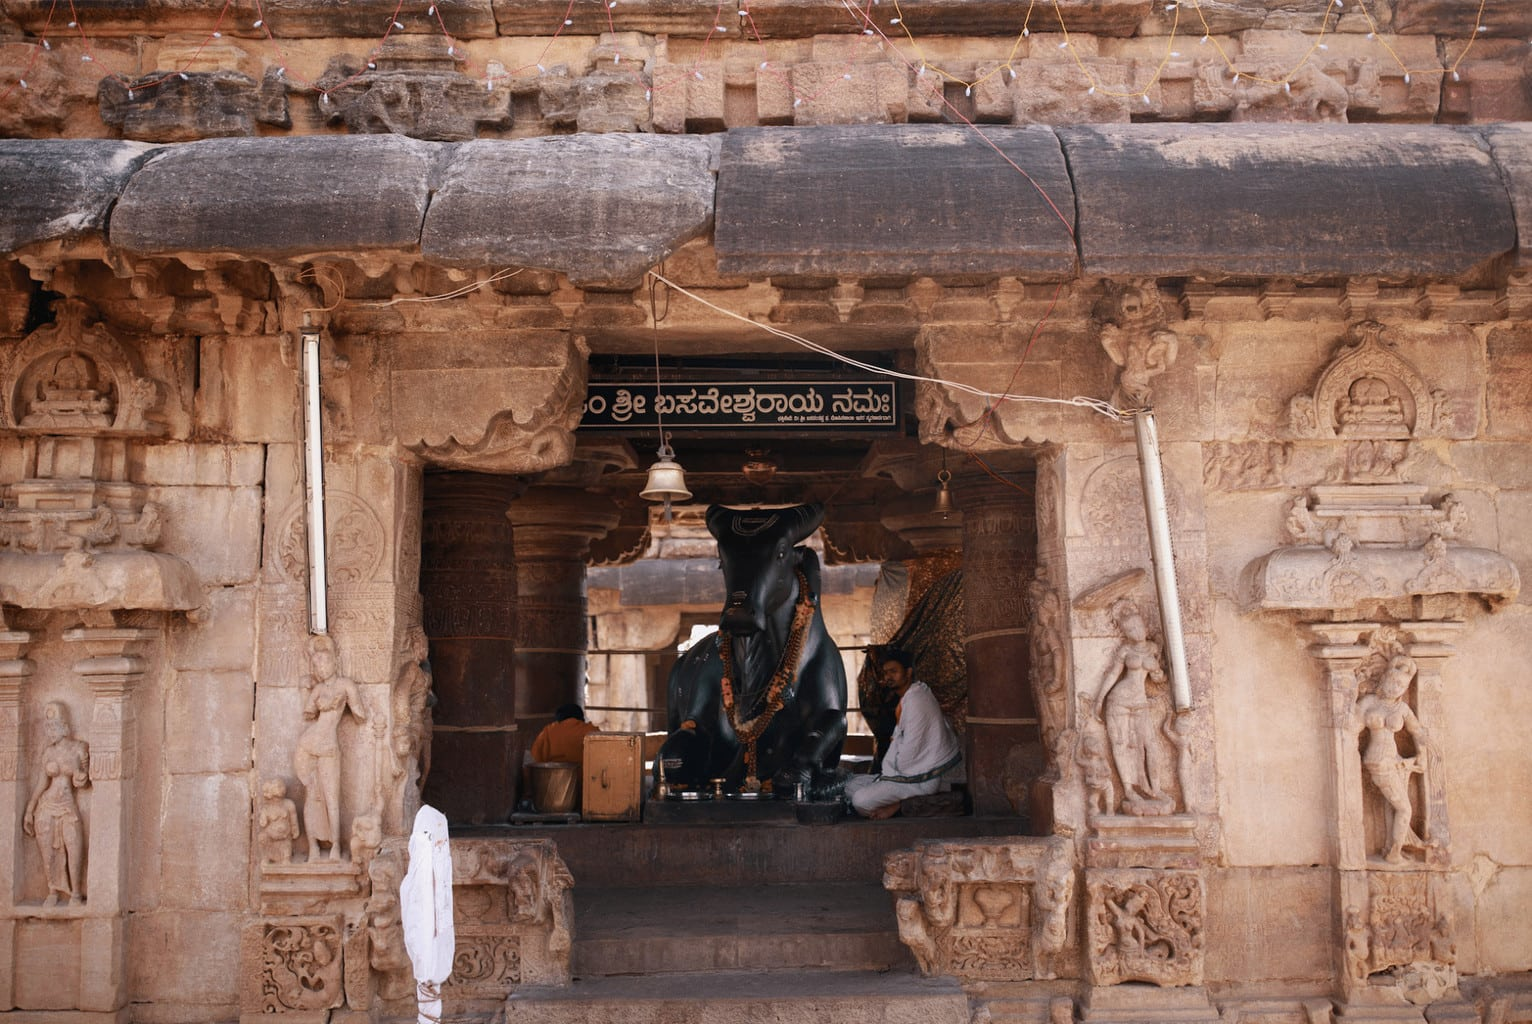 Nandi Shrine in Pattadakal. Photo by Jinson Abraham (@JinsonAbraham) for the Ministry of Tourism and Government of India